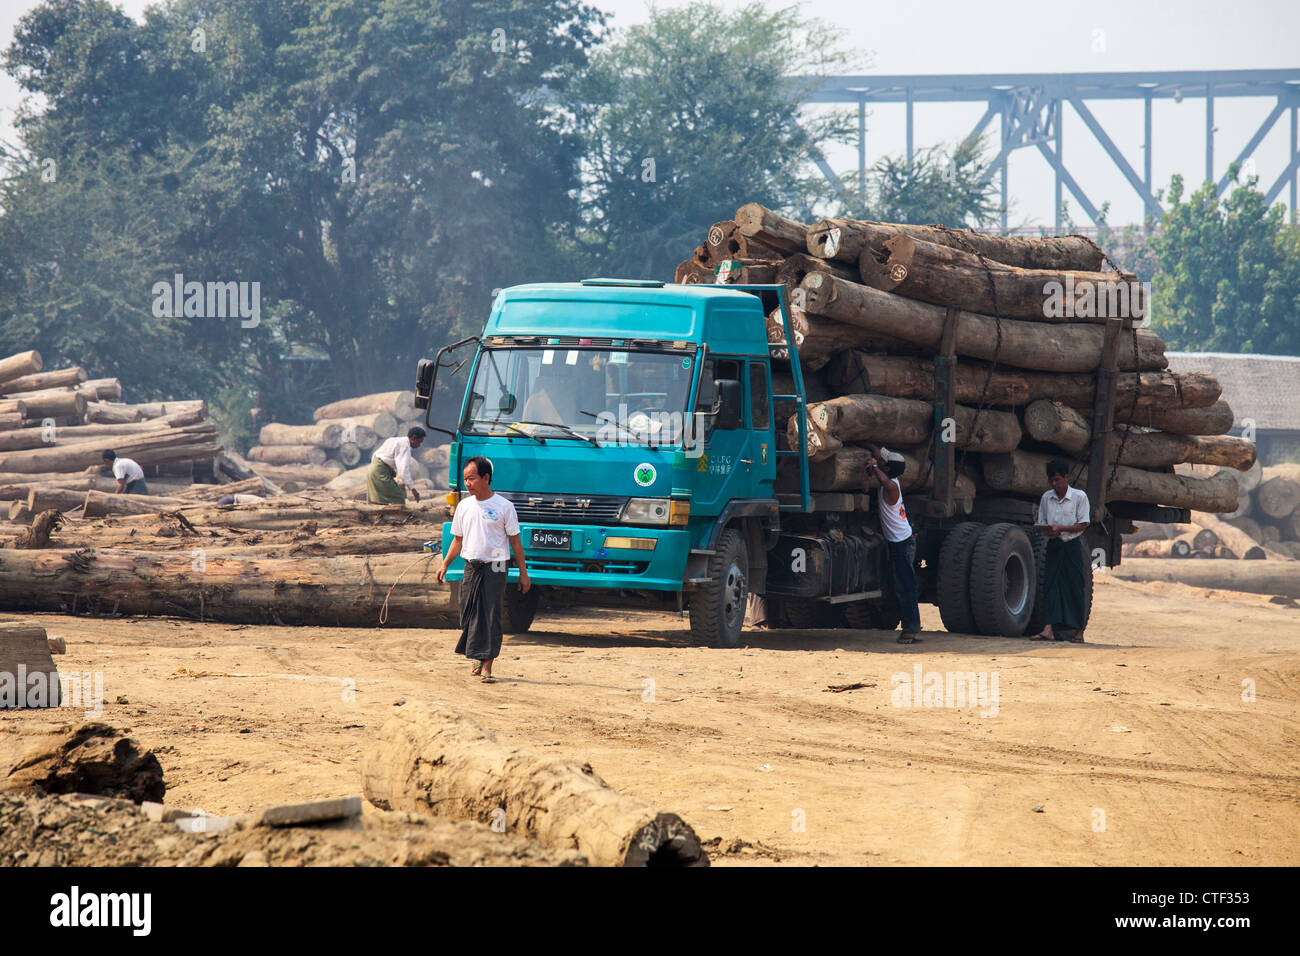 Le transport de billes de la rivière Irrawaddy près de Mandalay, Myanmar Photo Stock